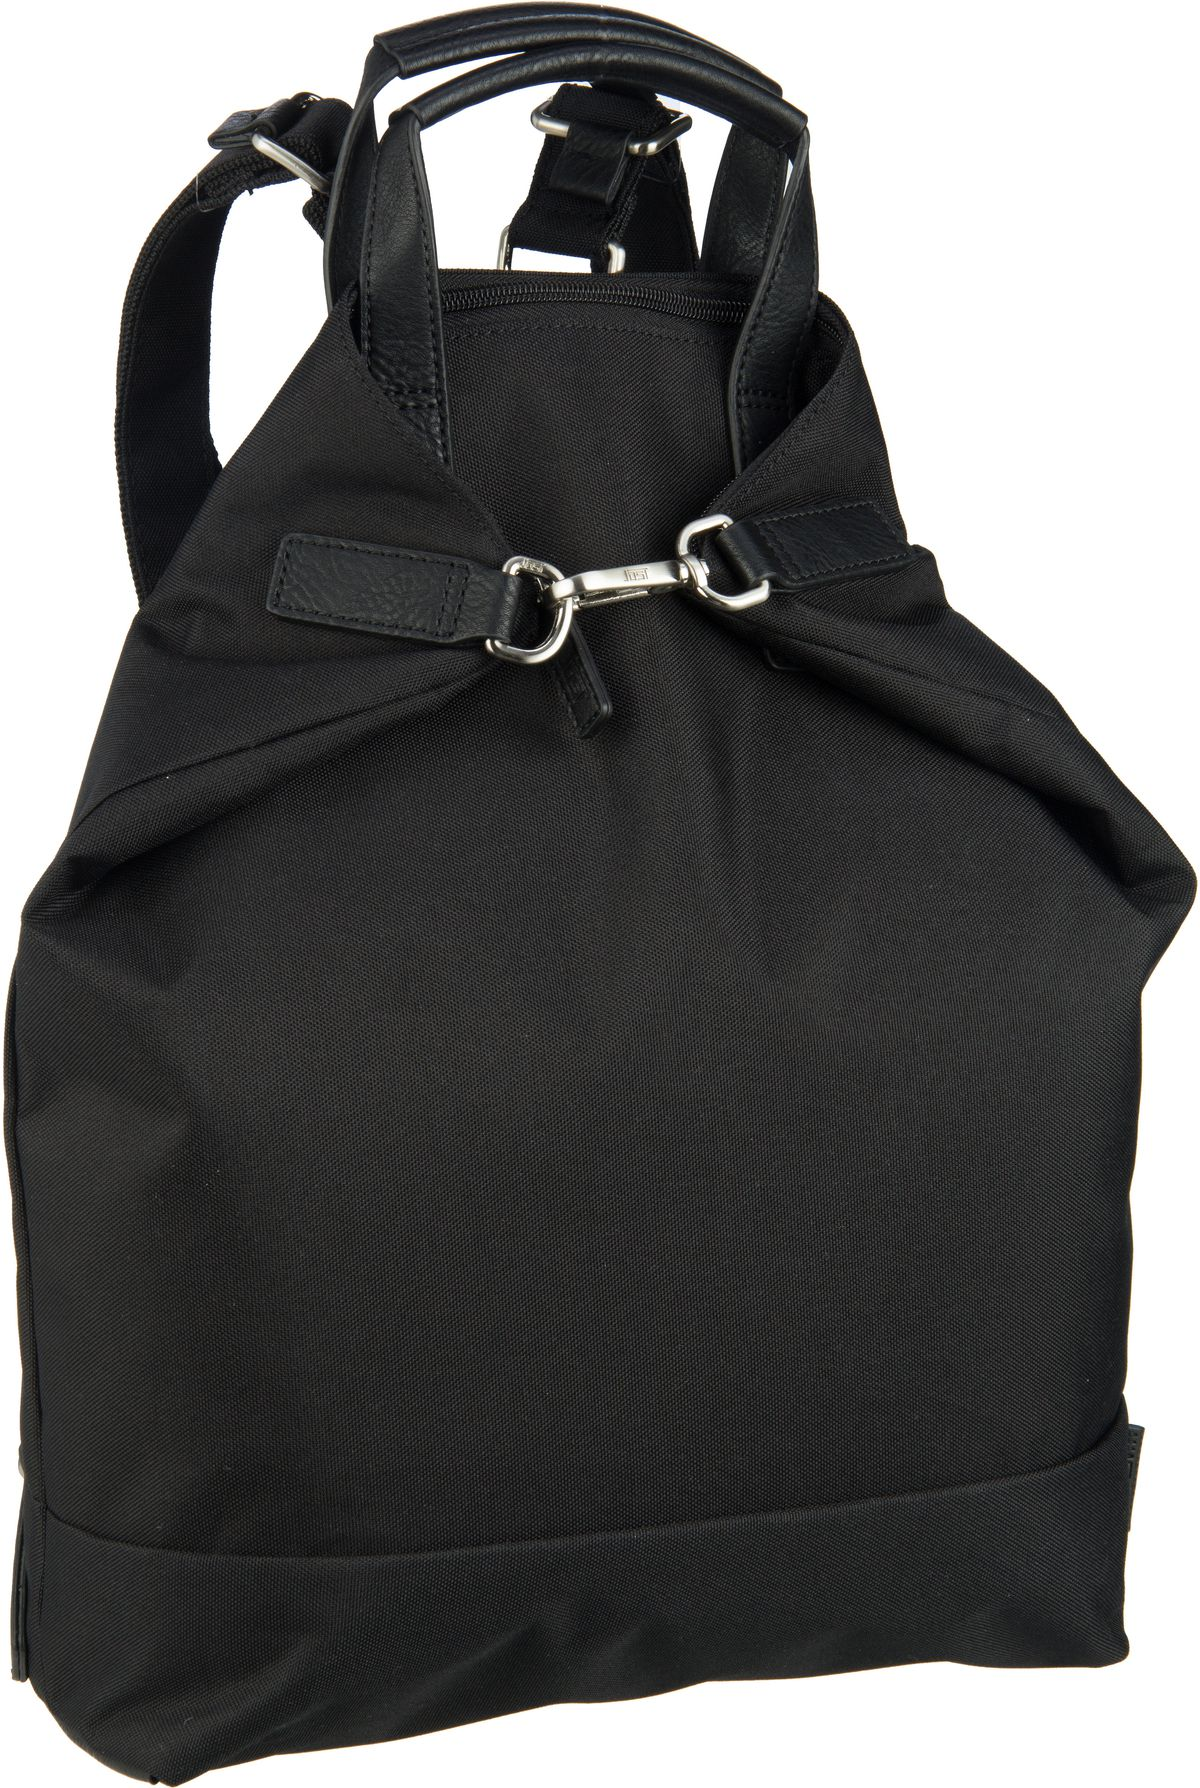 Jost Laptoprucksack 1127 X-Change Bag S Black